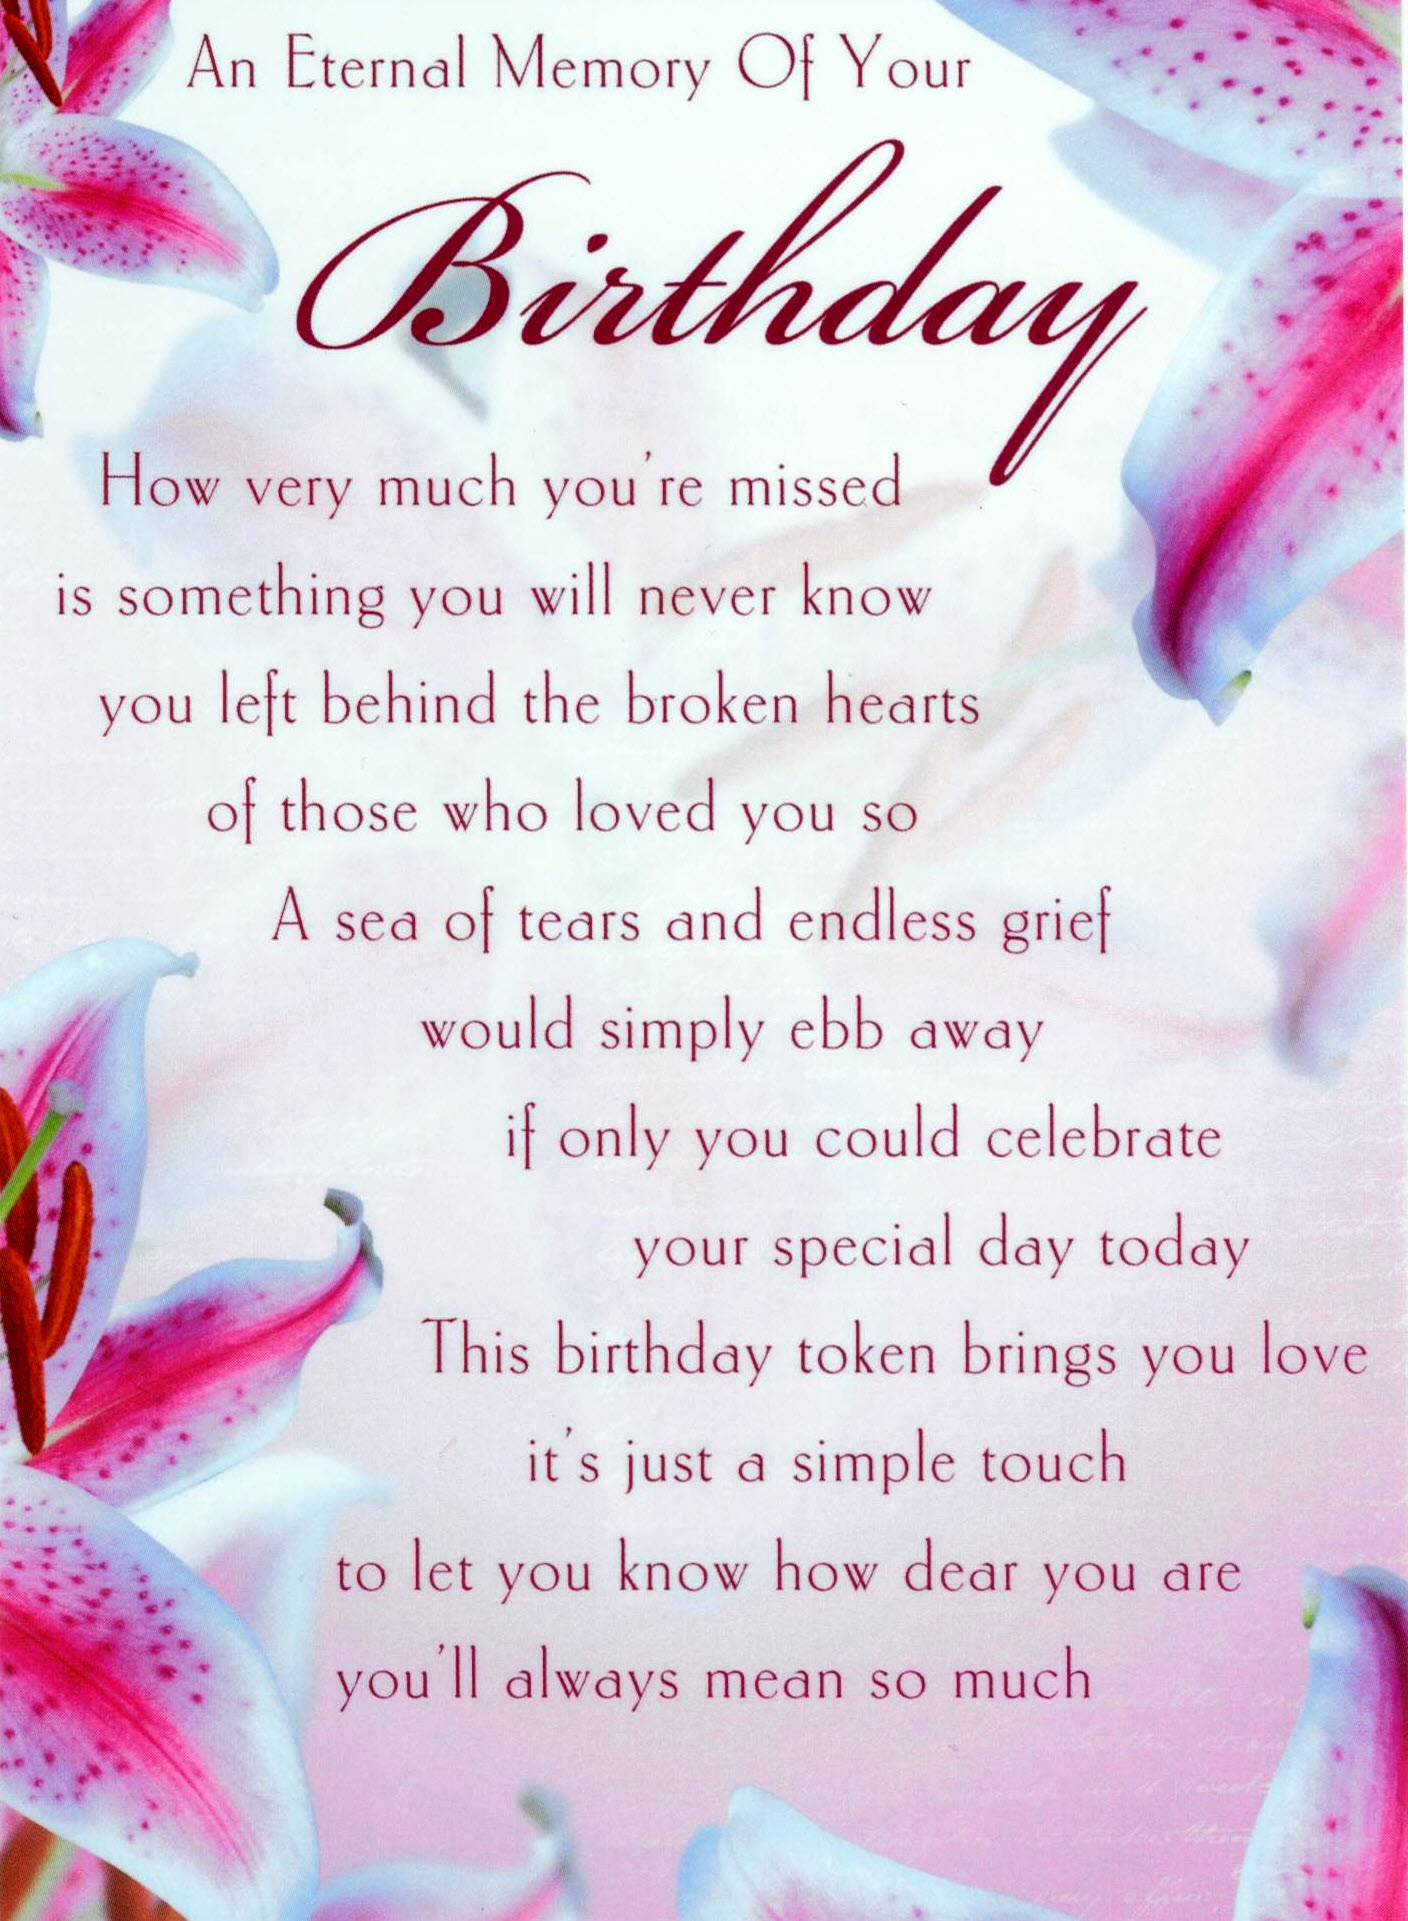 Happy birthday to my dad in heaven poems kristyandbryce Choice Image